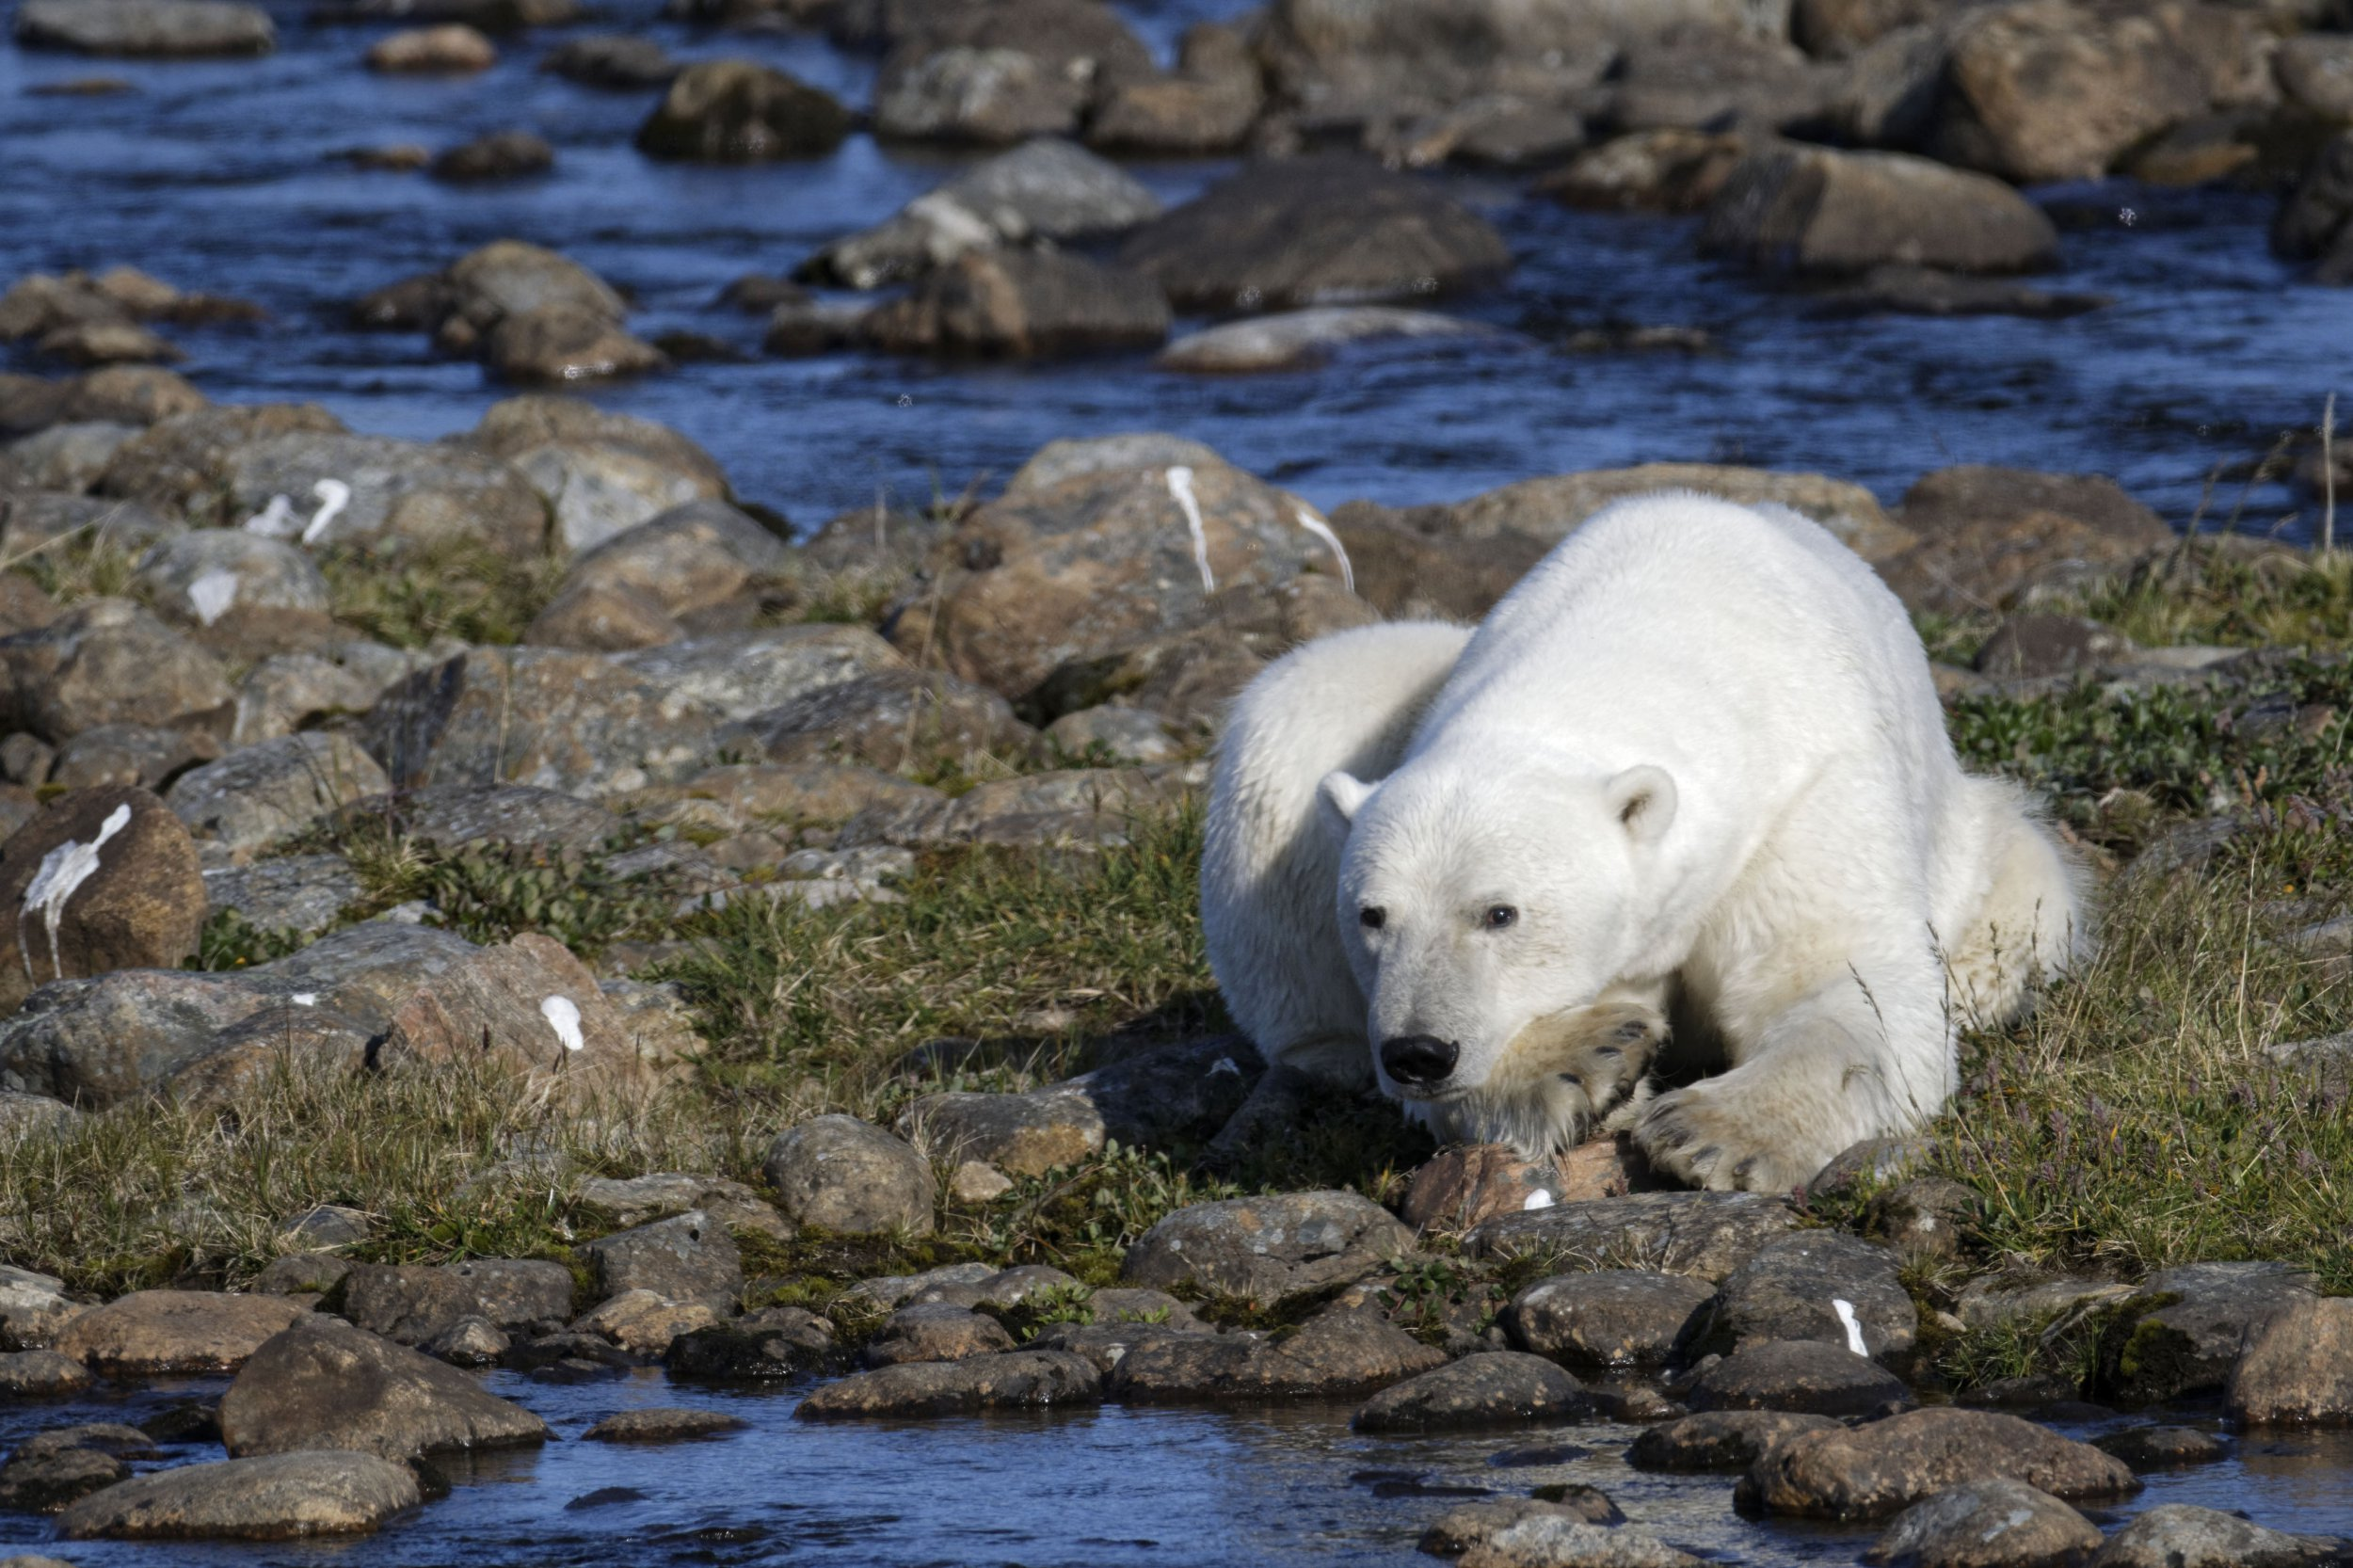 **MANDATORY BYLINE** PIC FROM Patrick Kientz/Caters News - (PICTURED: The lonely polar bear wandering around Torngat National Park, Labrador, Canada) - A lonely polar bear has been caught wondering across snow-less terrain. Patrick Kientz, 59, was visiting Torngat National Park, Labrador, Canada, last year August when he saw the lonesome bear.The photographer managed to snap the bear trying to catch fish as he roamed around alone.SEE CATERS COPY